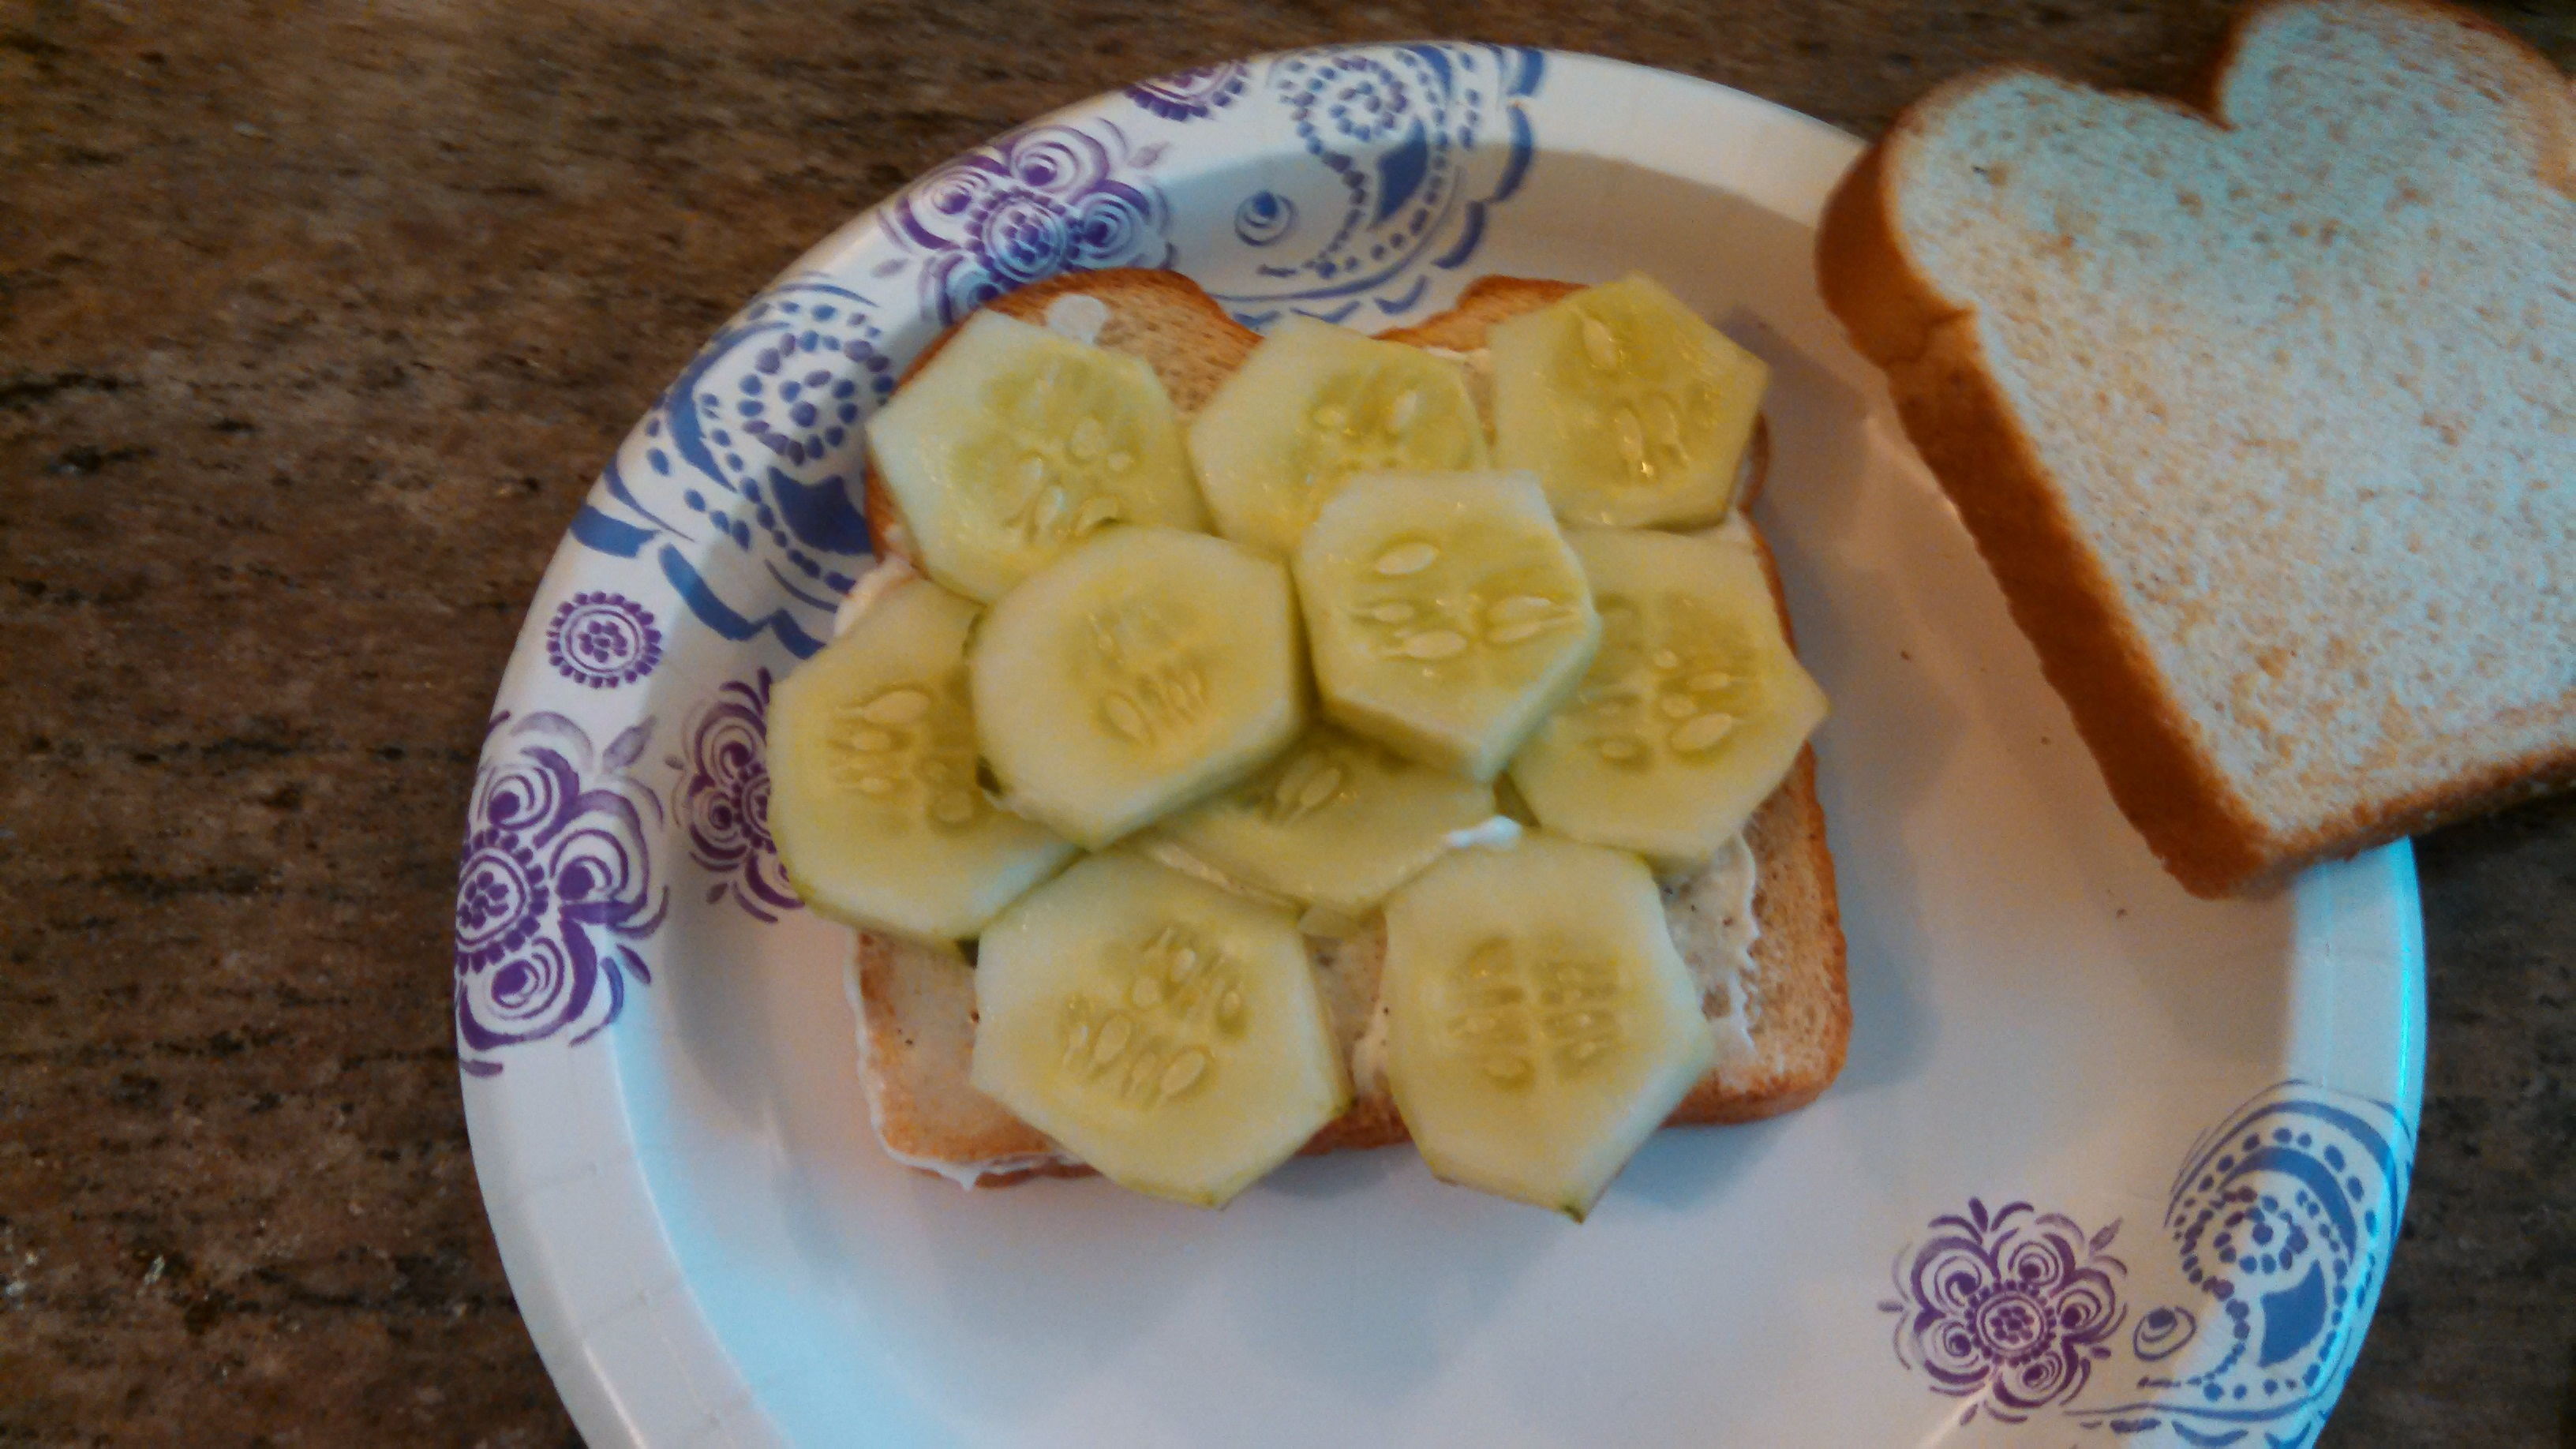 I'm Officially Middle-Aged: I ate a Cucumber Sandwich